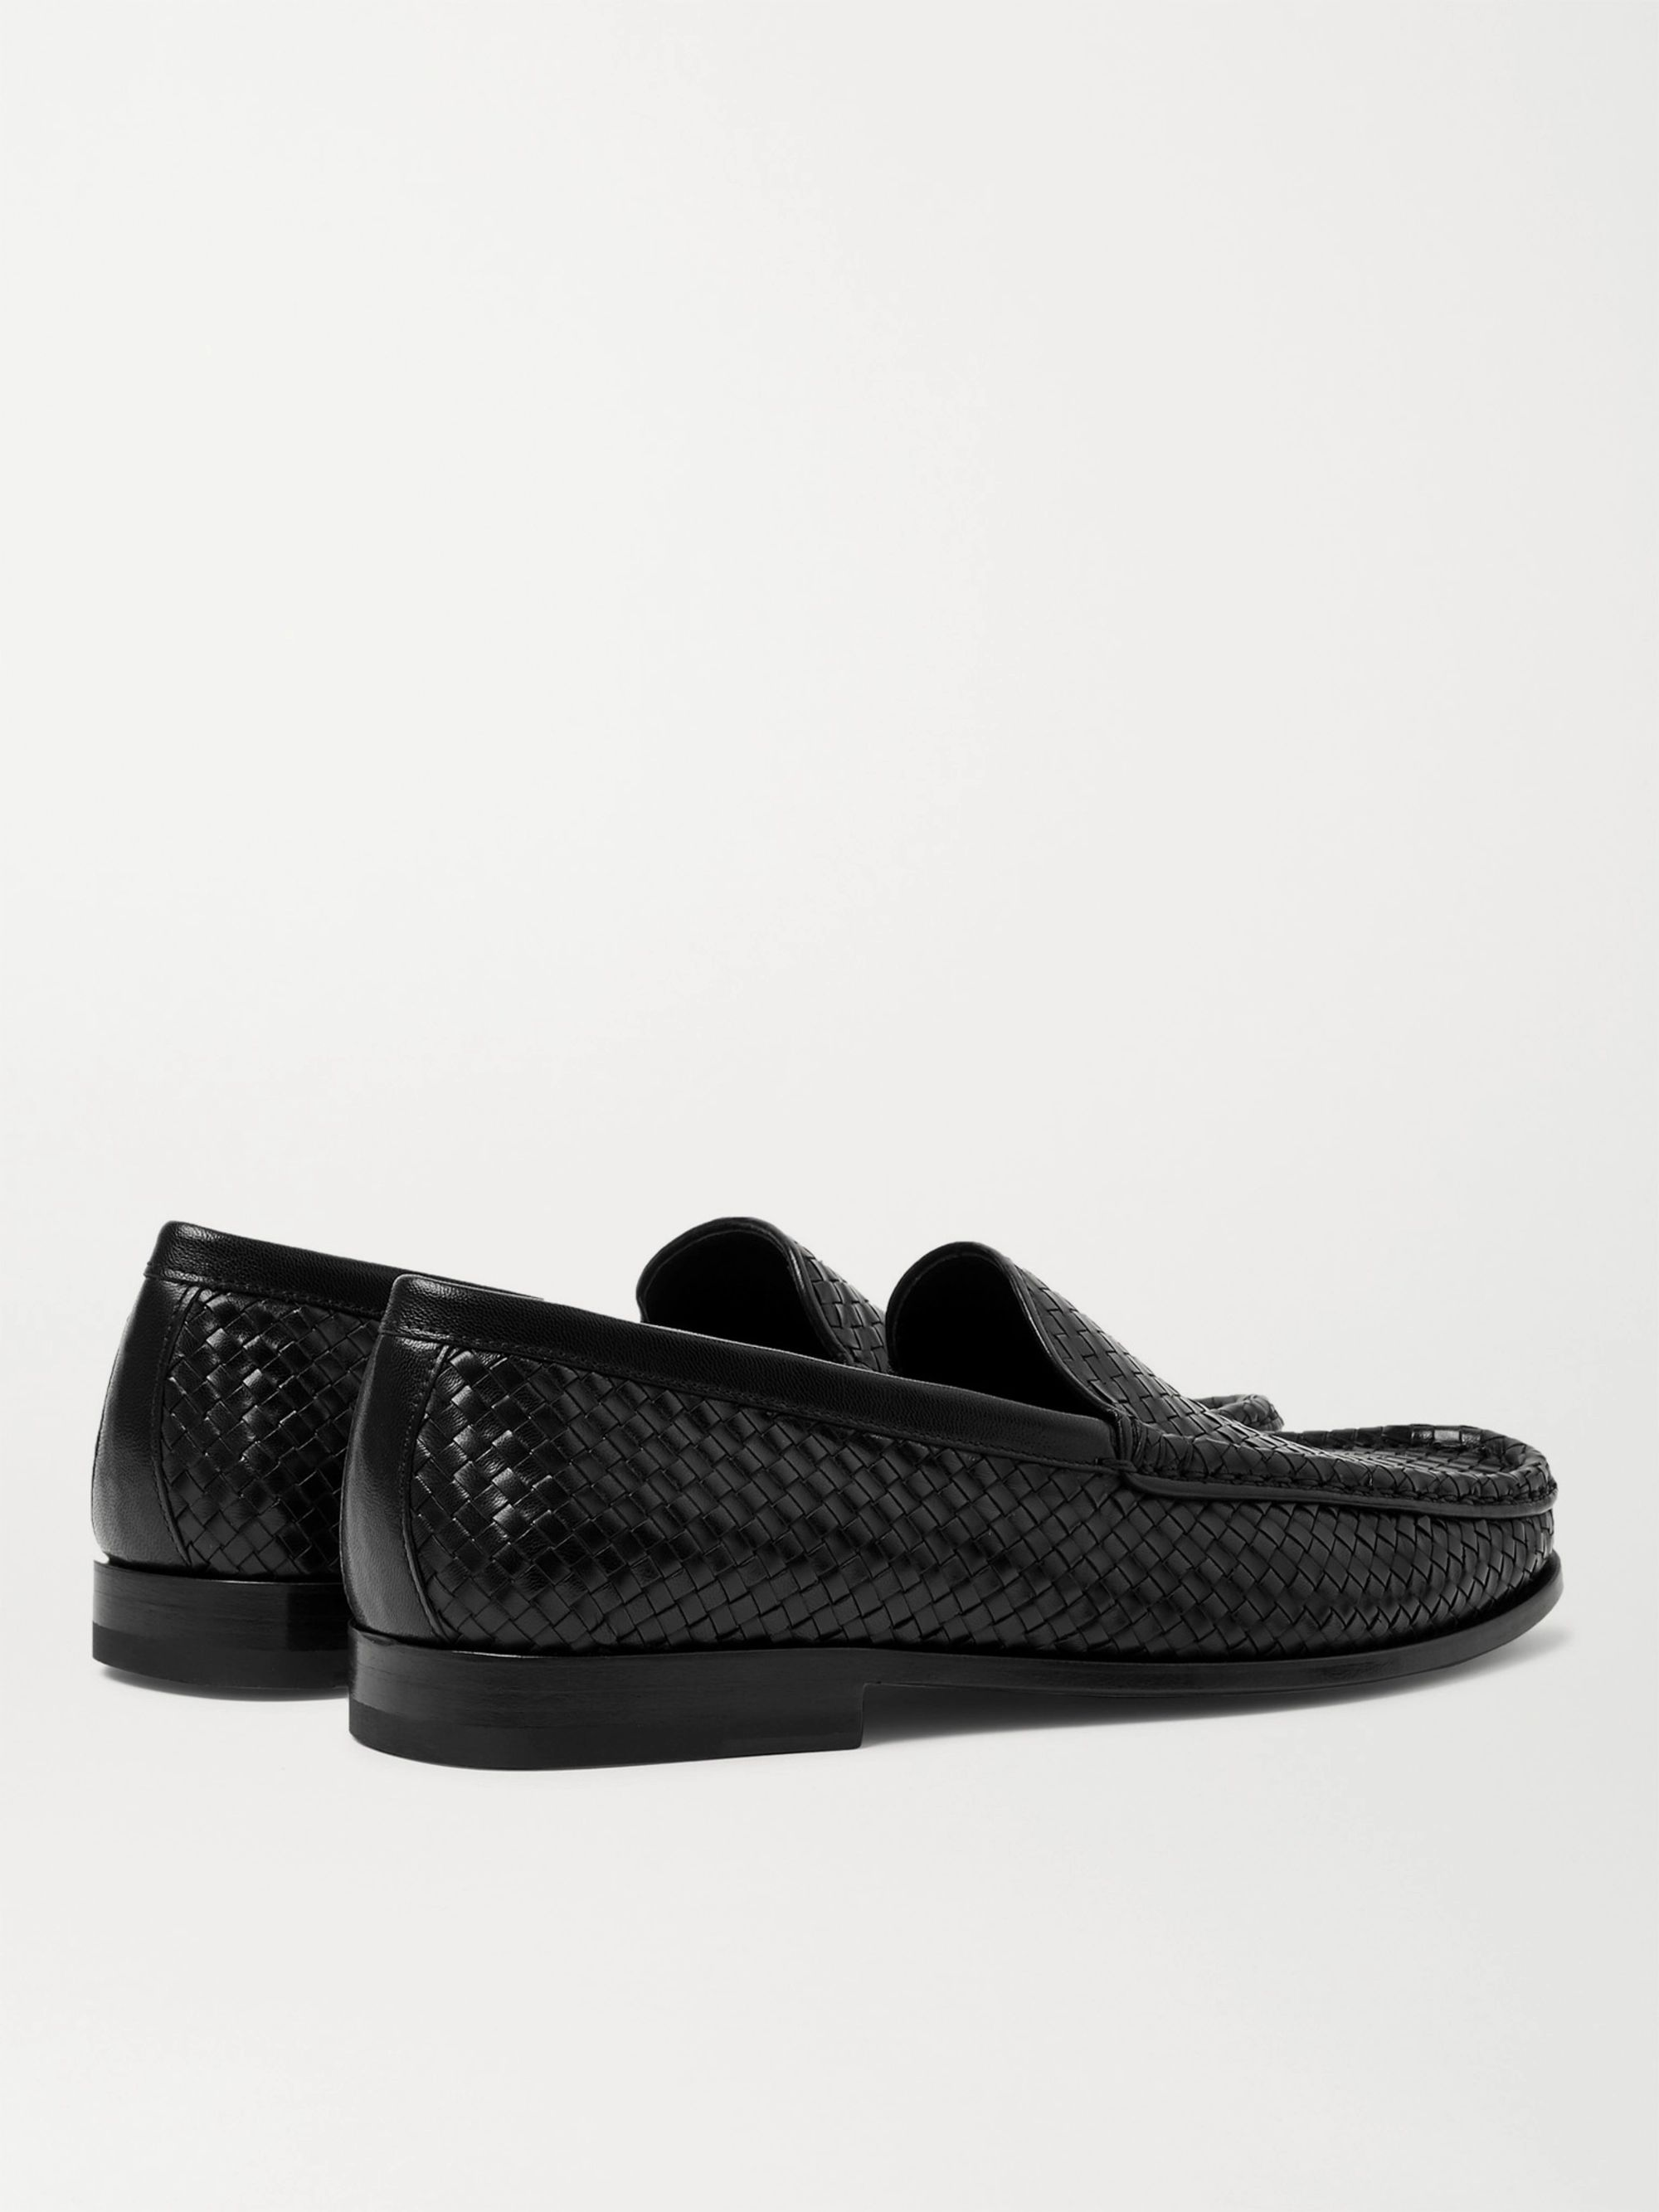 Black Collapsible-heel Woven Leather Loafers | J.m. Weston